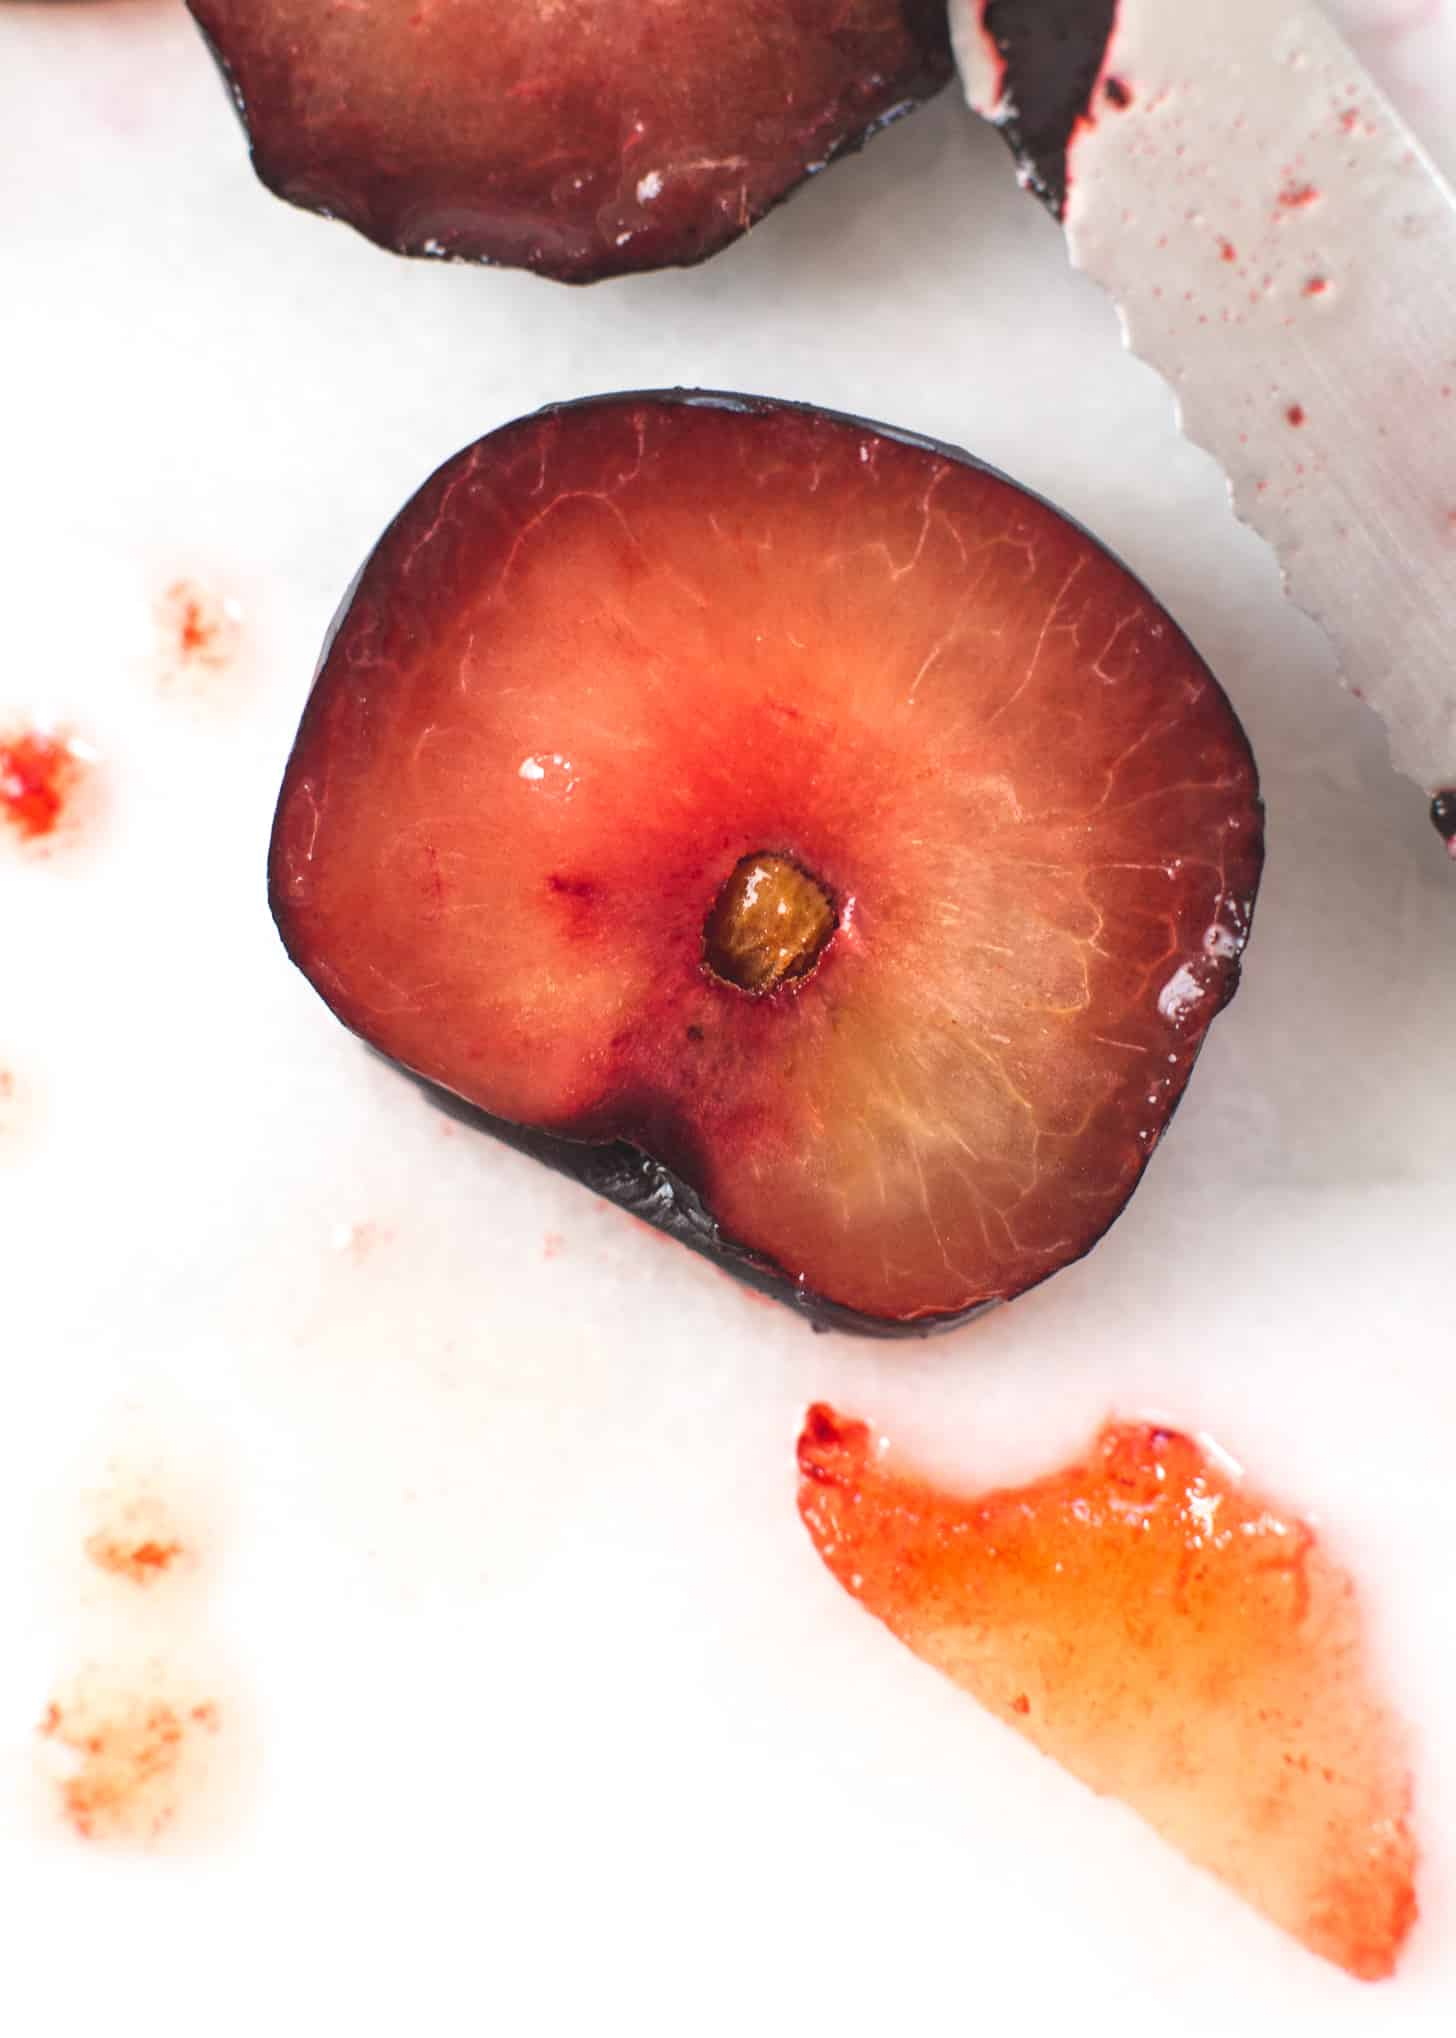 Plums on a white table